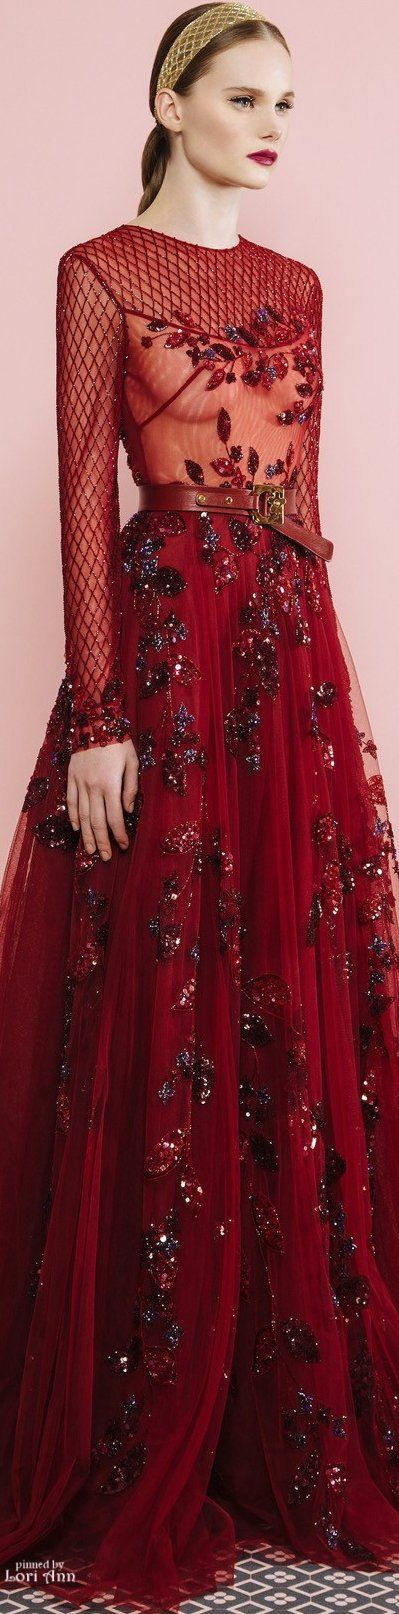 *.* Georges Hobeika Fall 2016 RTW. Red